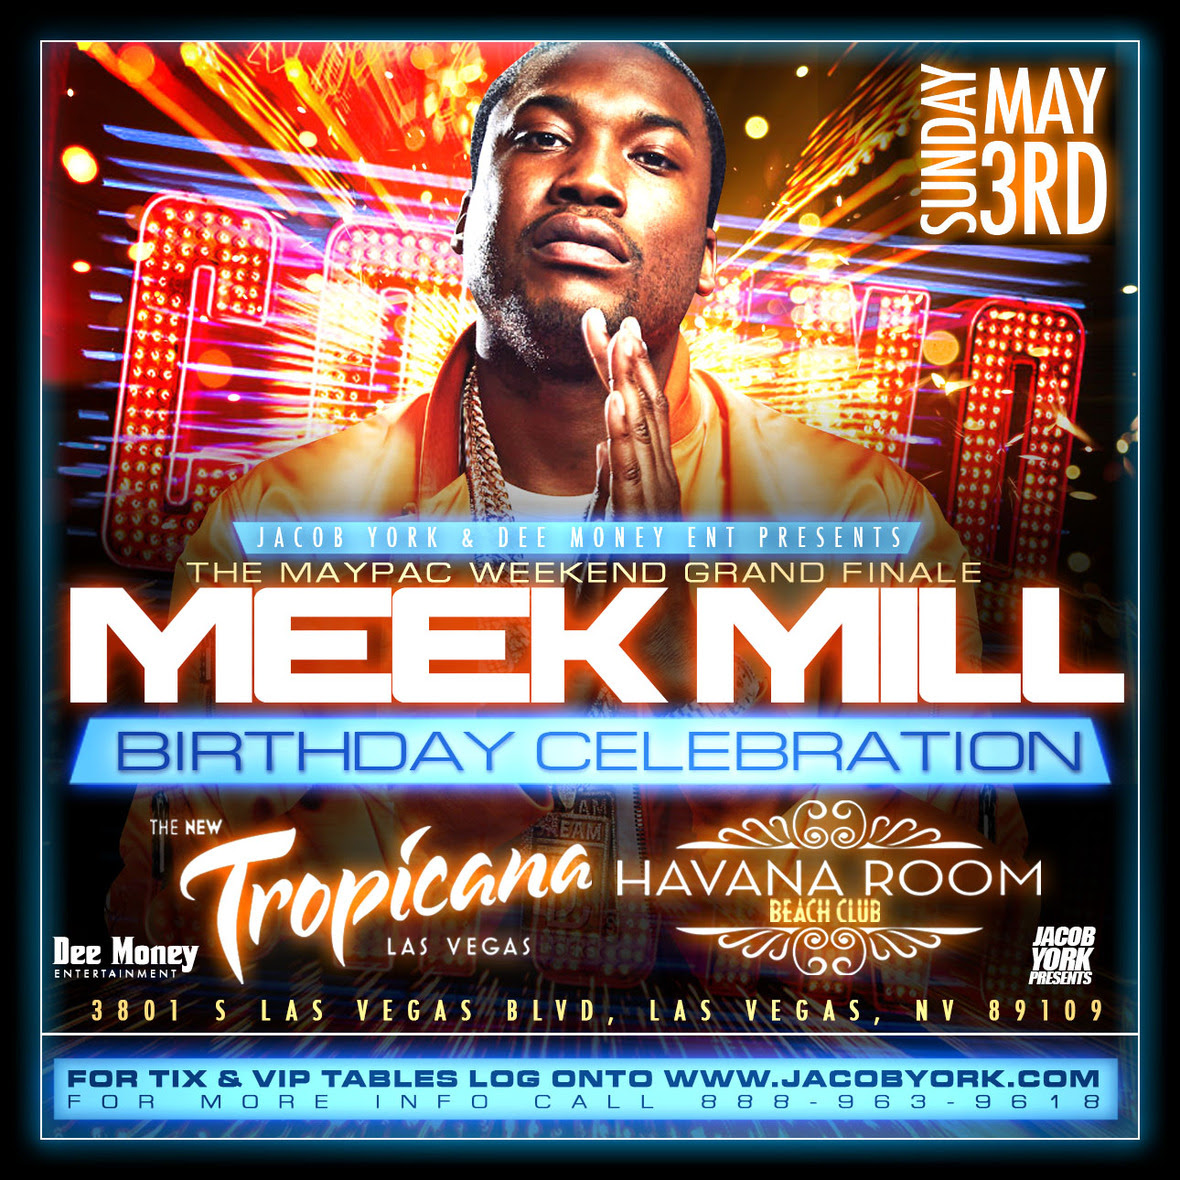 Meek Mills Birthday Celebration, Diddy Fight Afterparty @ Tropicana Las Vegas